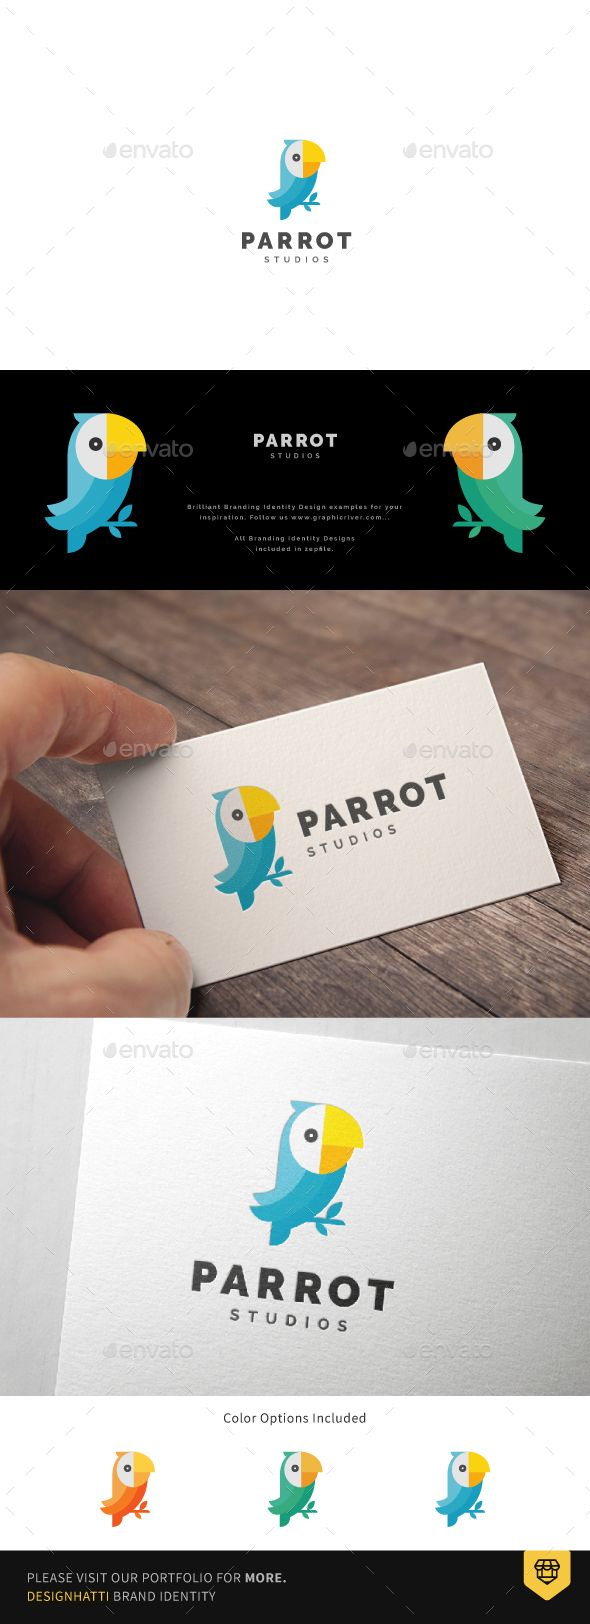 Parrot Studio Logo by designhatti Parrot Studio LogoLogo template suitable for Graphic works, Design studios, App or Software, Online activities, Personal logo, etc